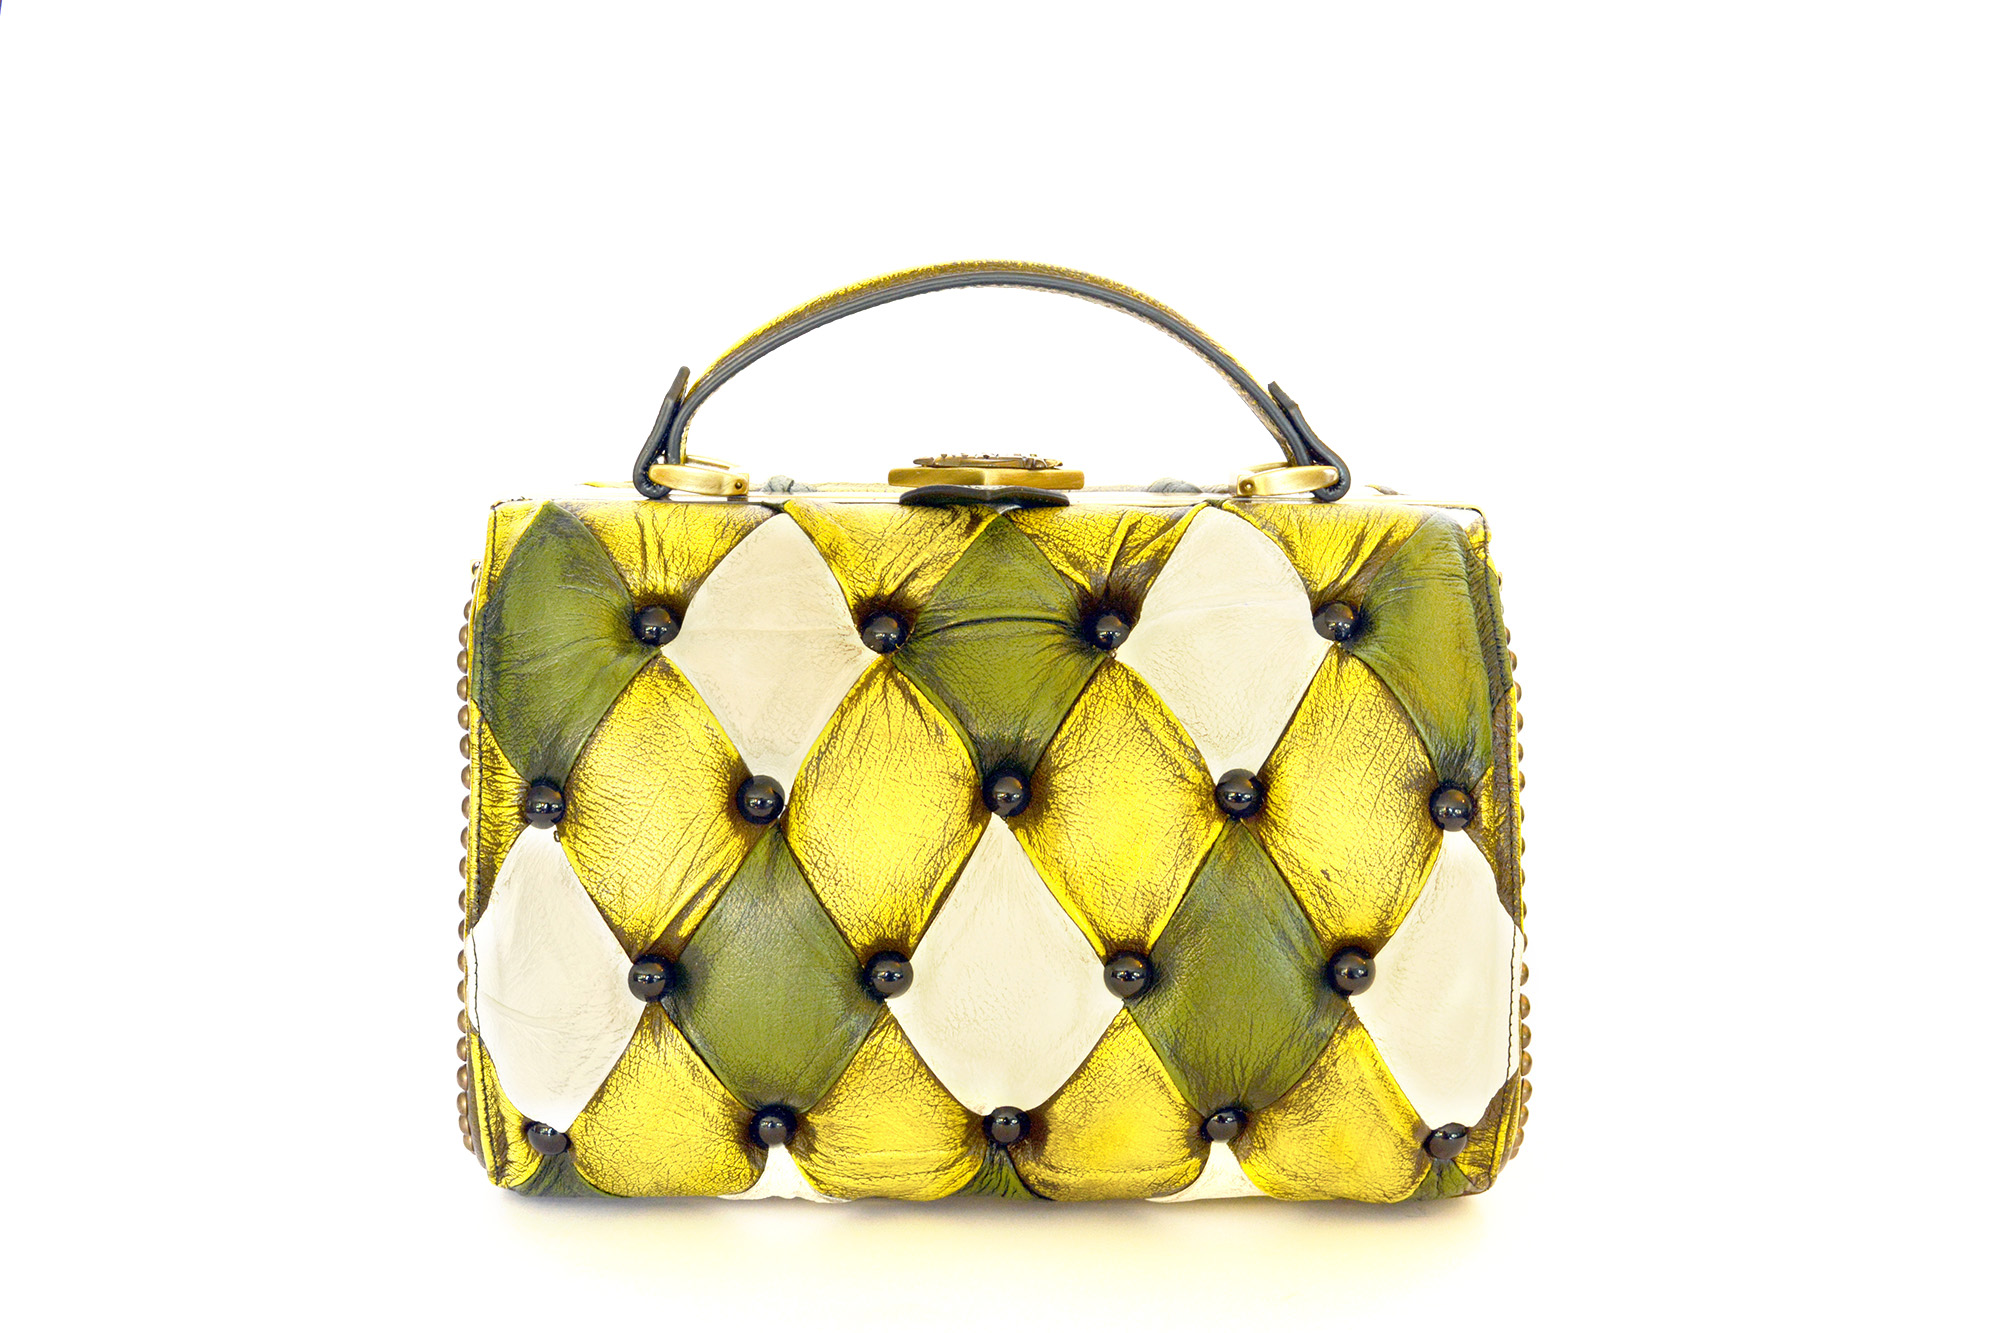 harleq-green-lemon-bag-luxury-leathers